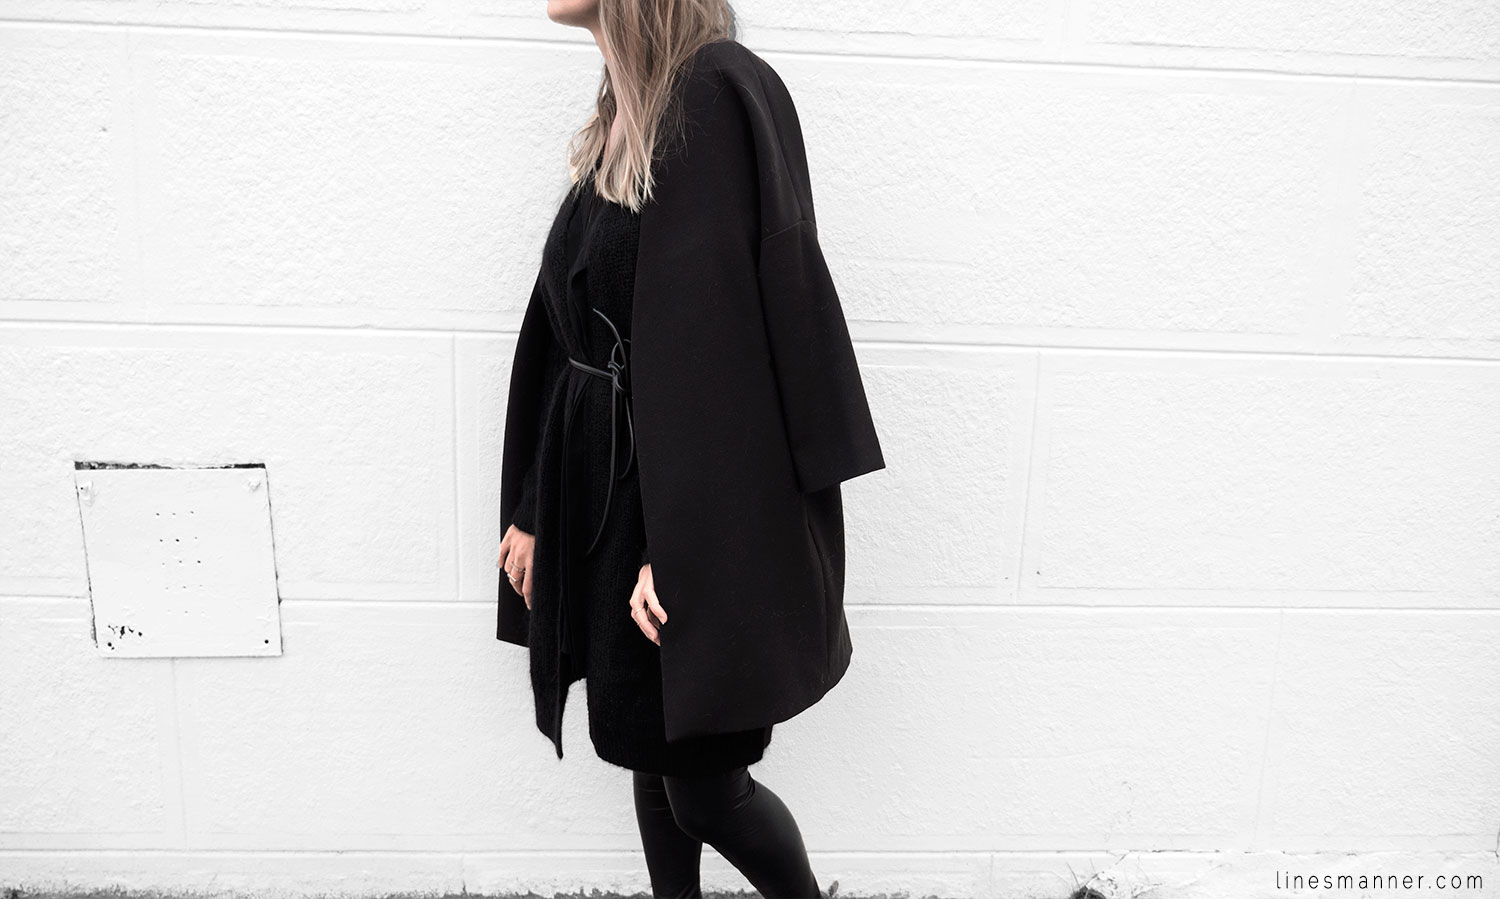 Lines-Manner-Timeless-Comfort-Essentials-Monochrome-Trend-Minimal-Textures-Oversized-Warm-Fall-Leather-Details-Simplicity-Modern-Basics-Outfit-Structure-3